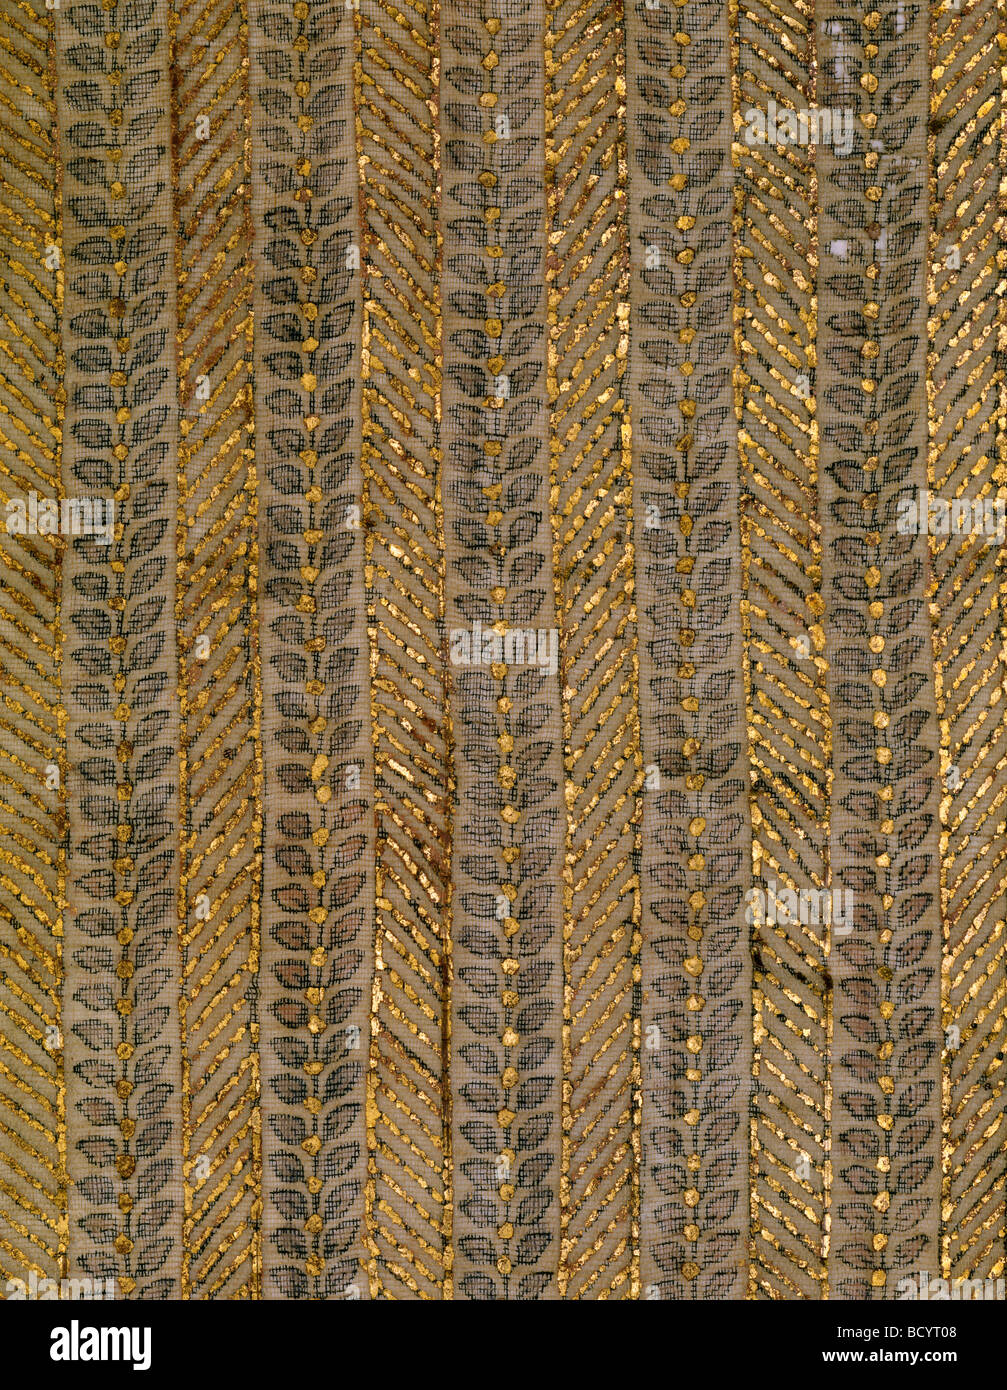 Textile. Hyderabad, India, 18th-19th century - Stock Image